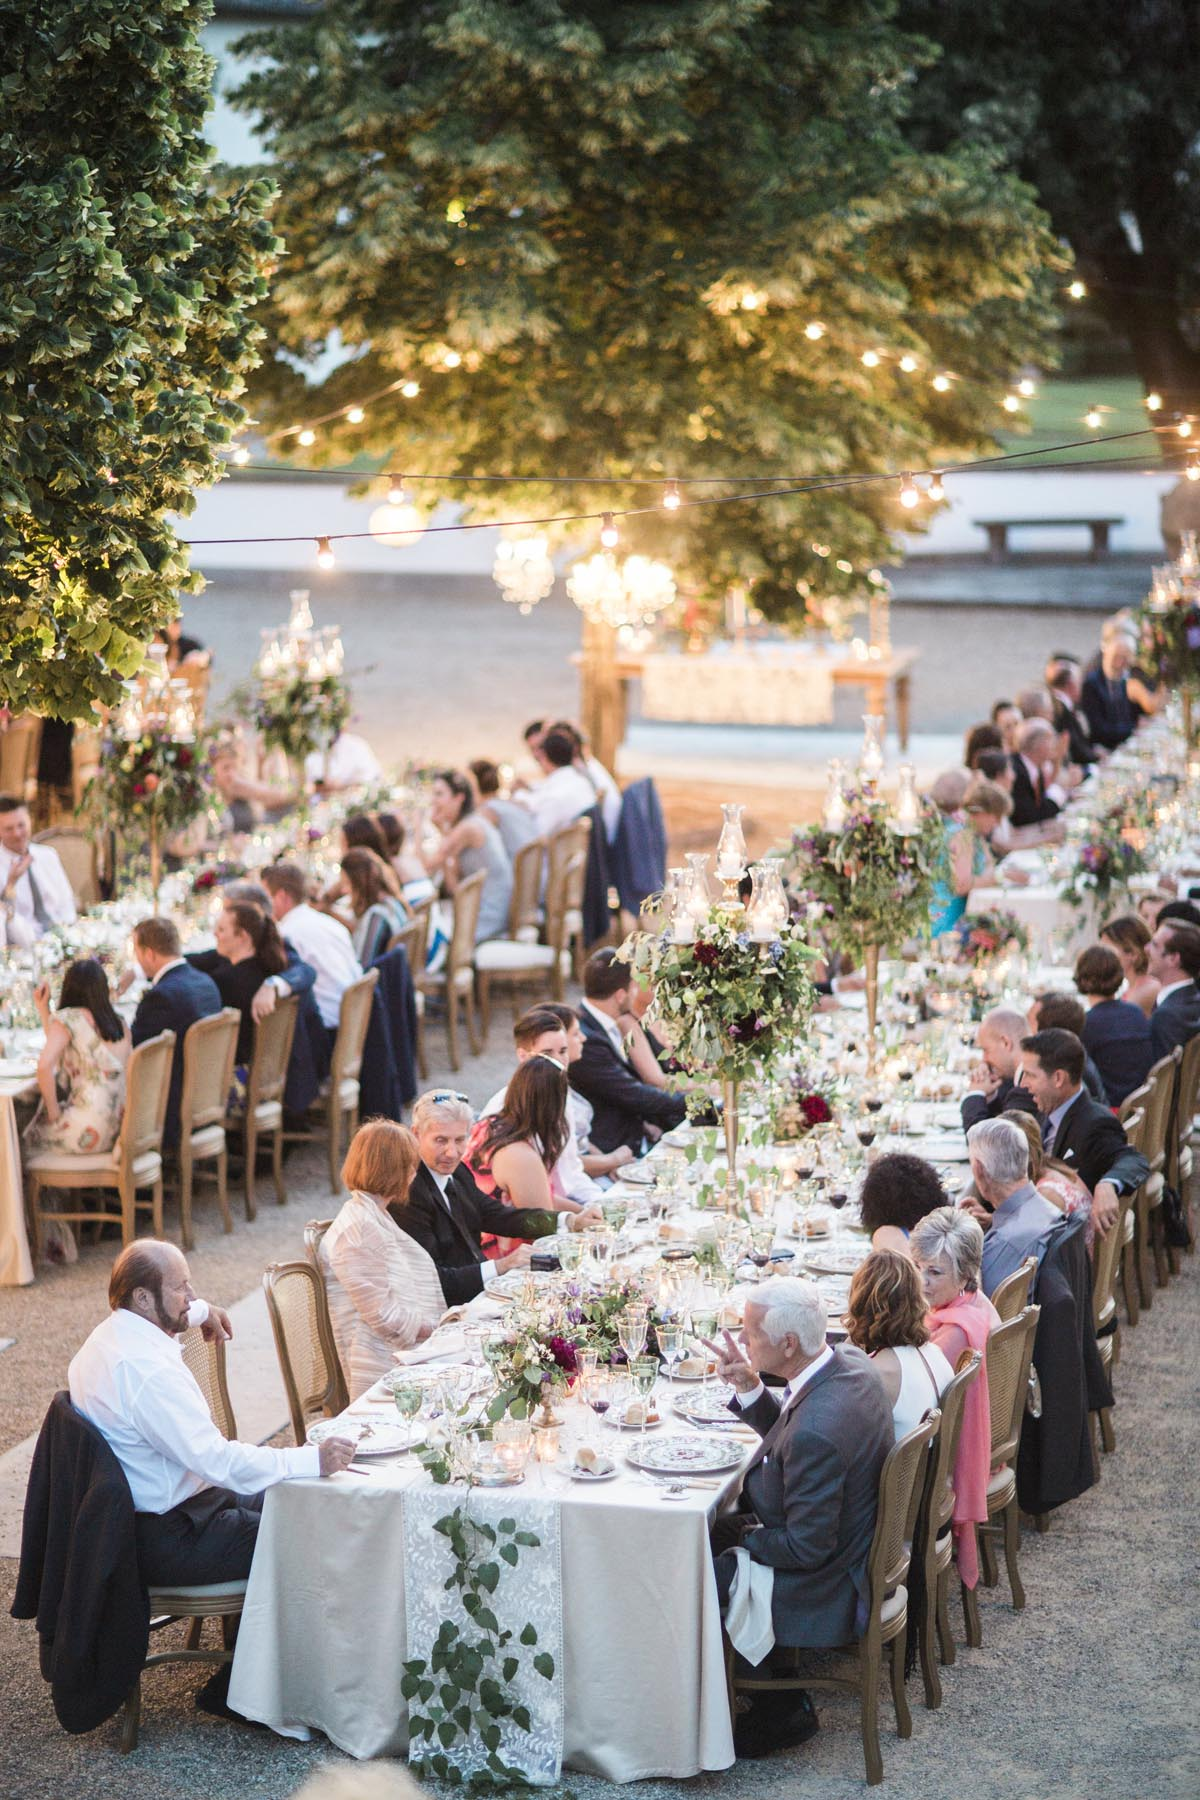 Tuscany vineyard wedding dinner with chandeliers